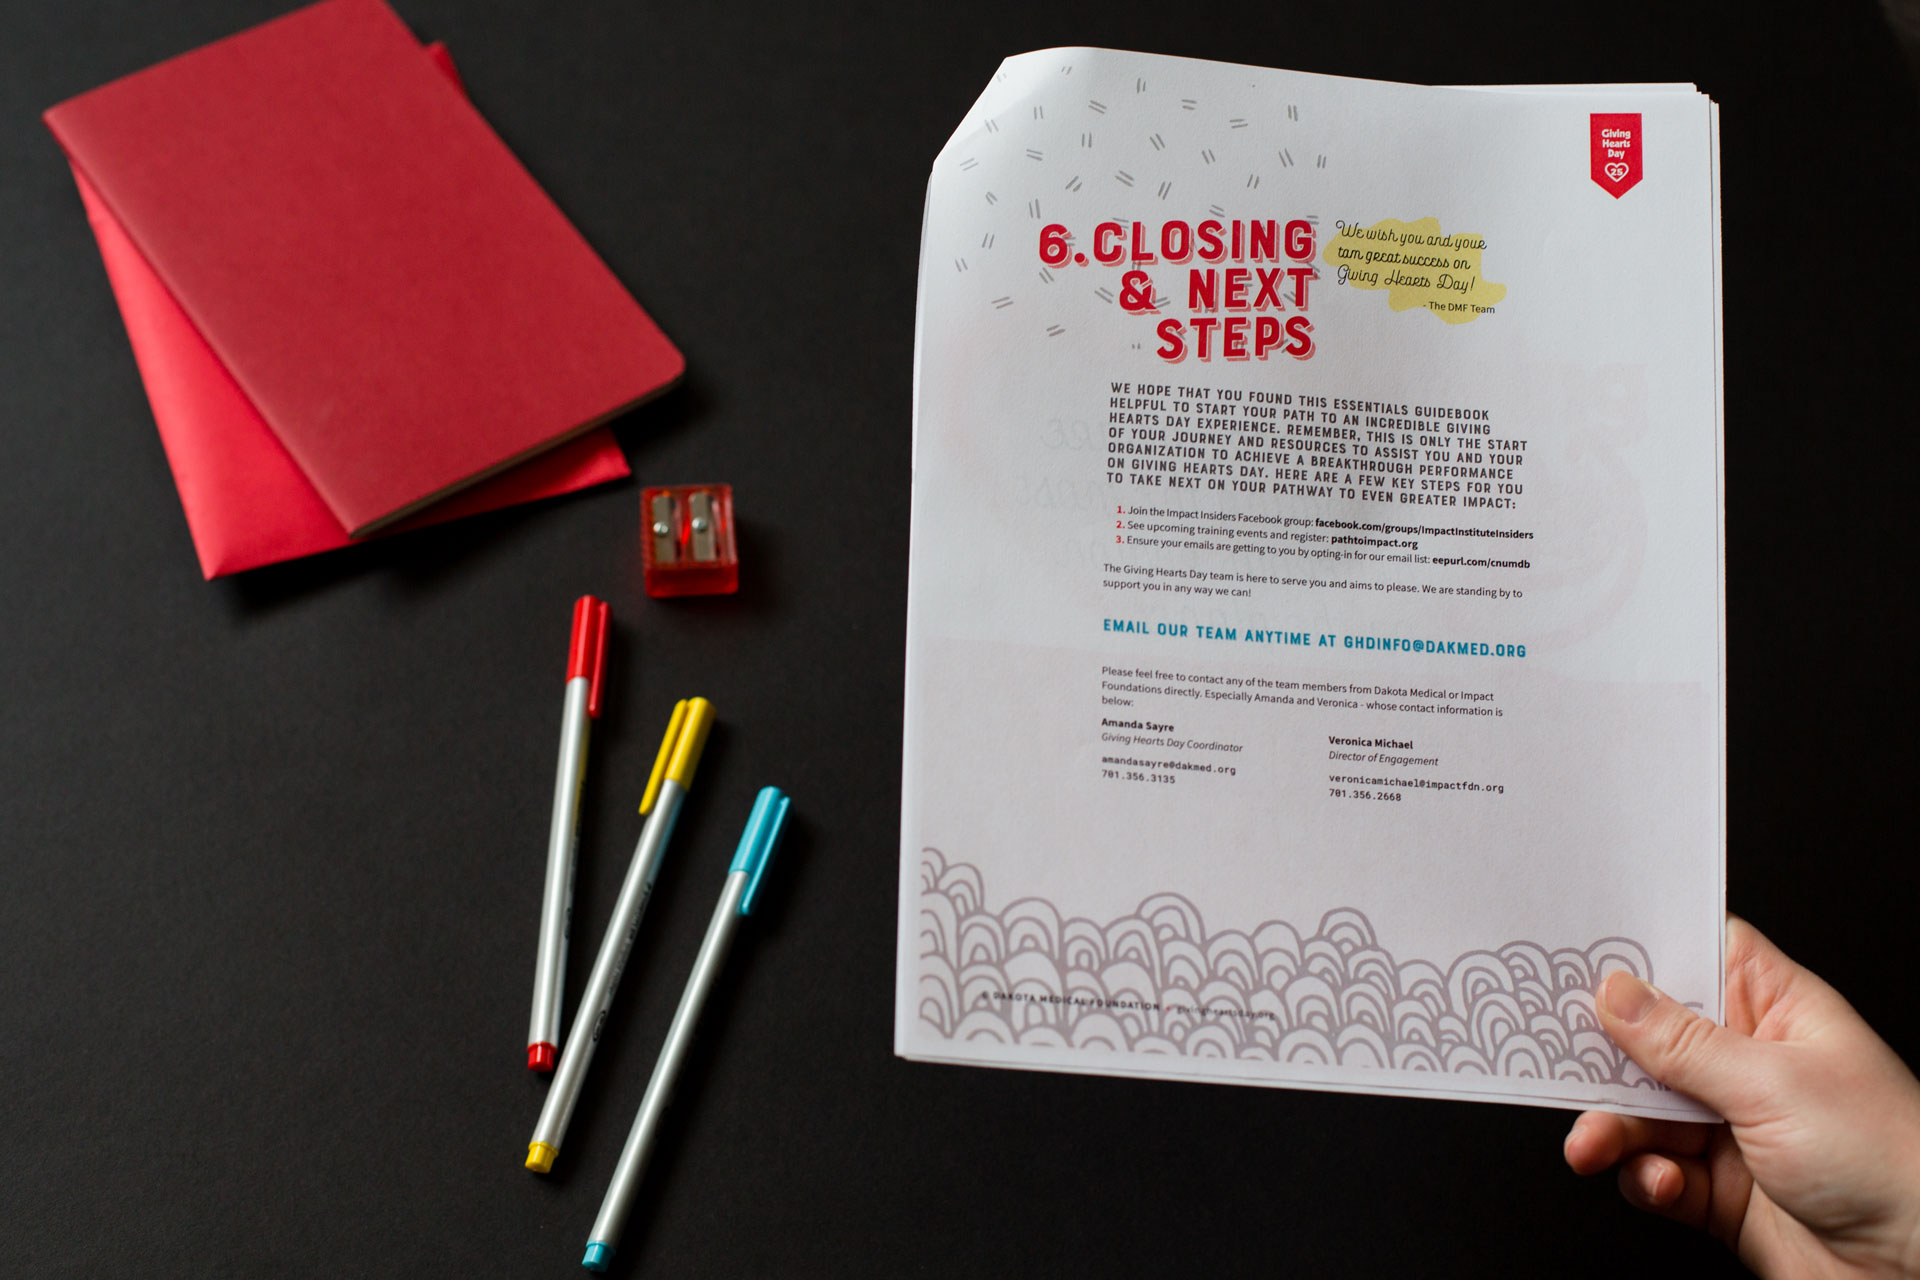 A hand holding the printed guidebook opened to interior page over a dark background next to red journals and markers